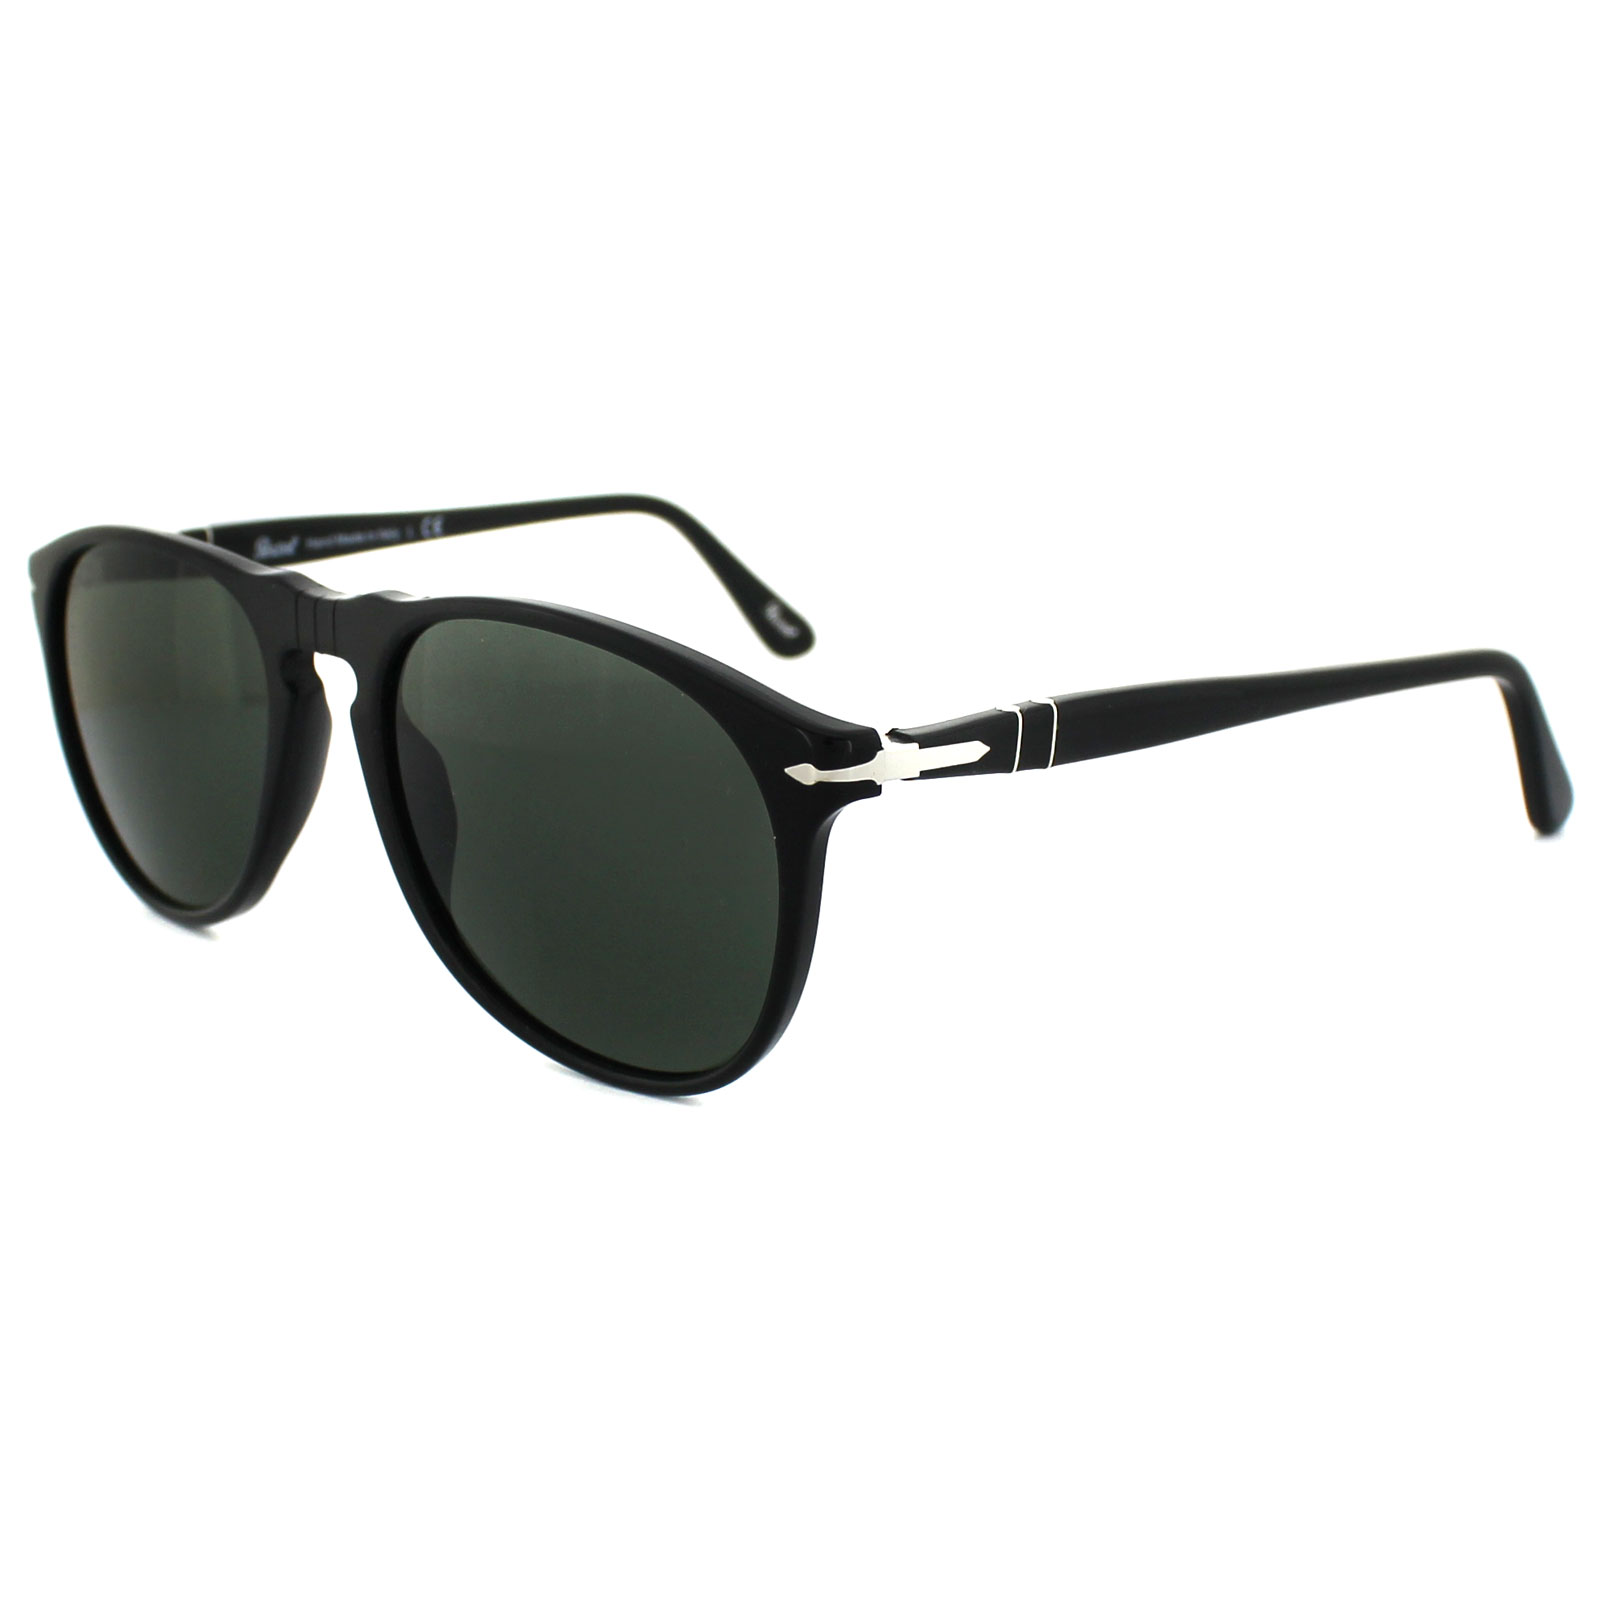 9f24954925 Persol Sunglasses 9649 95 31 Black Green 8053672129380